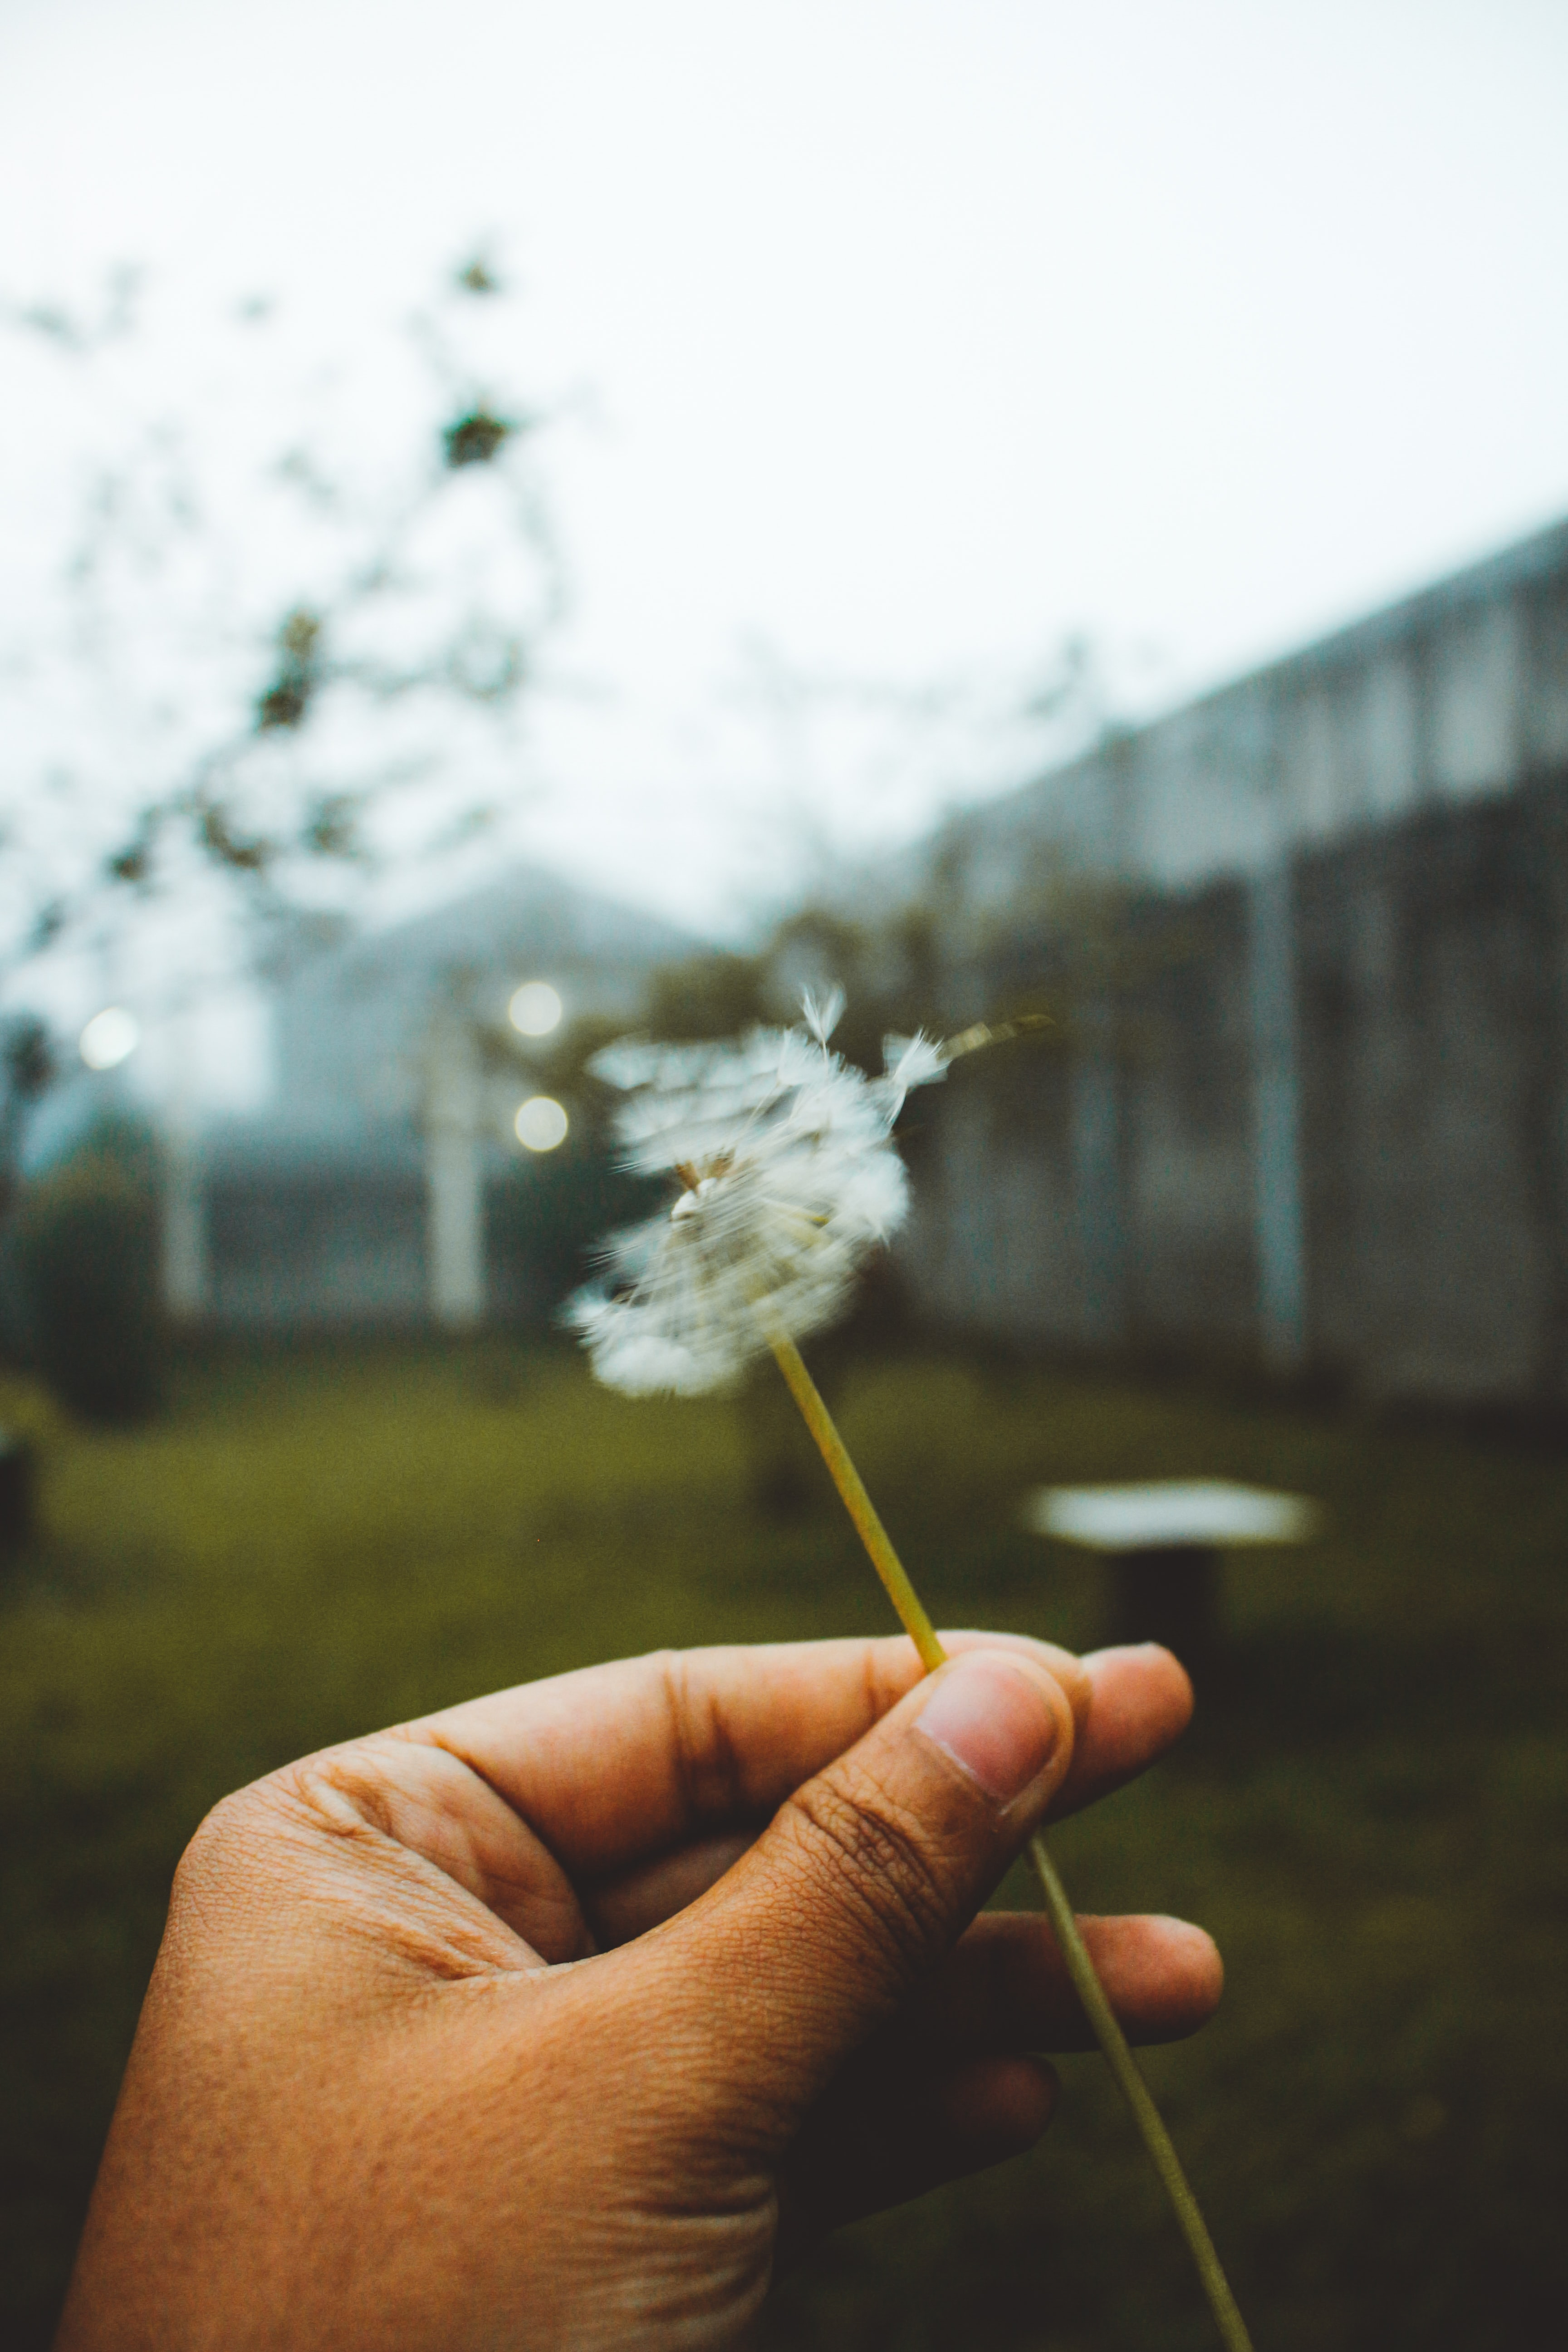 person holding white dandelion flower during daytime